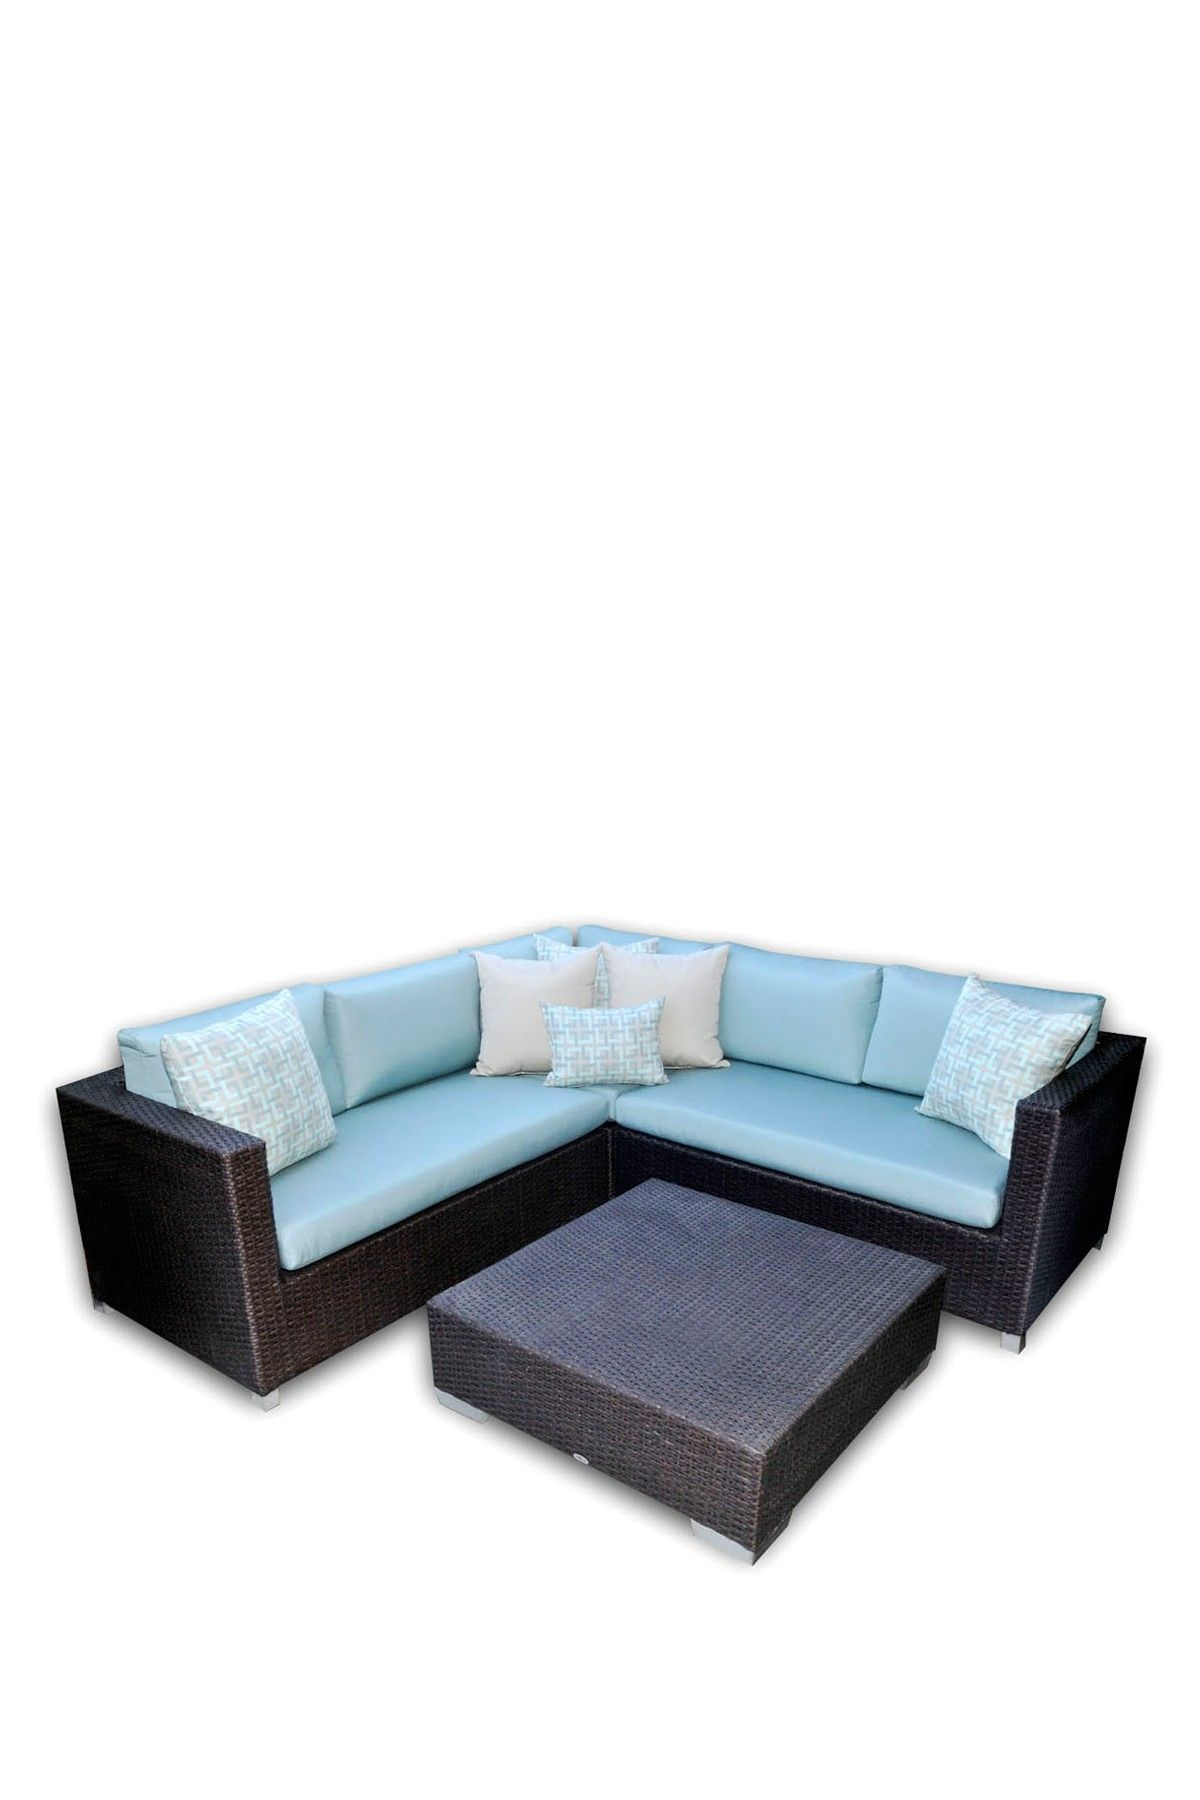 4 Piece Recliner Sectional Sofa Sofas Suitable For Bad Backs Vienna Set Home Pinterest